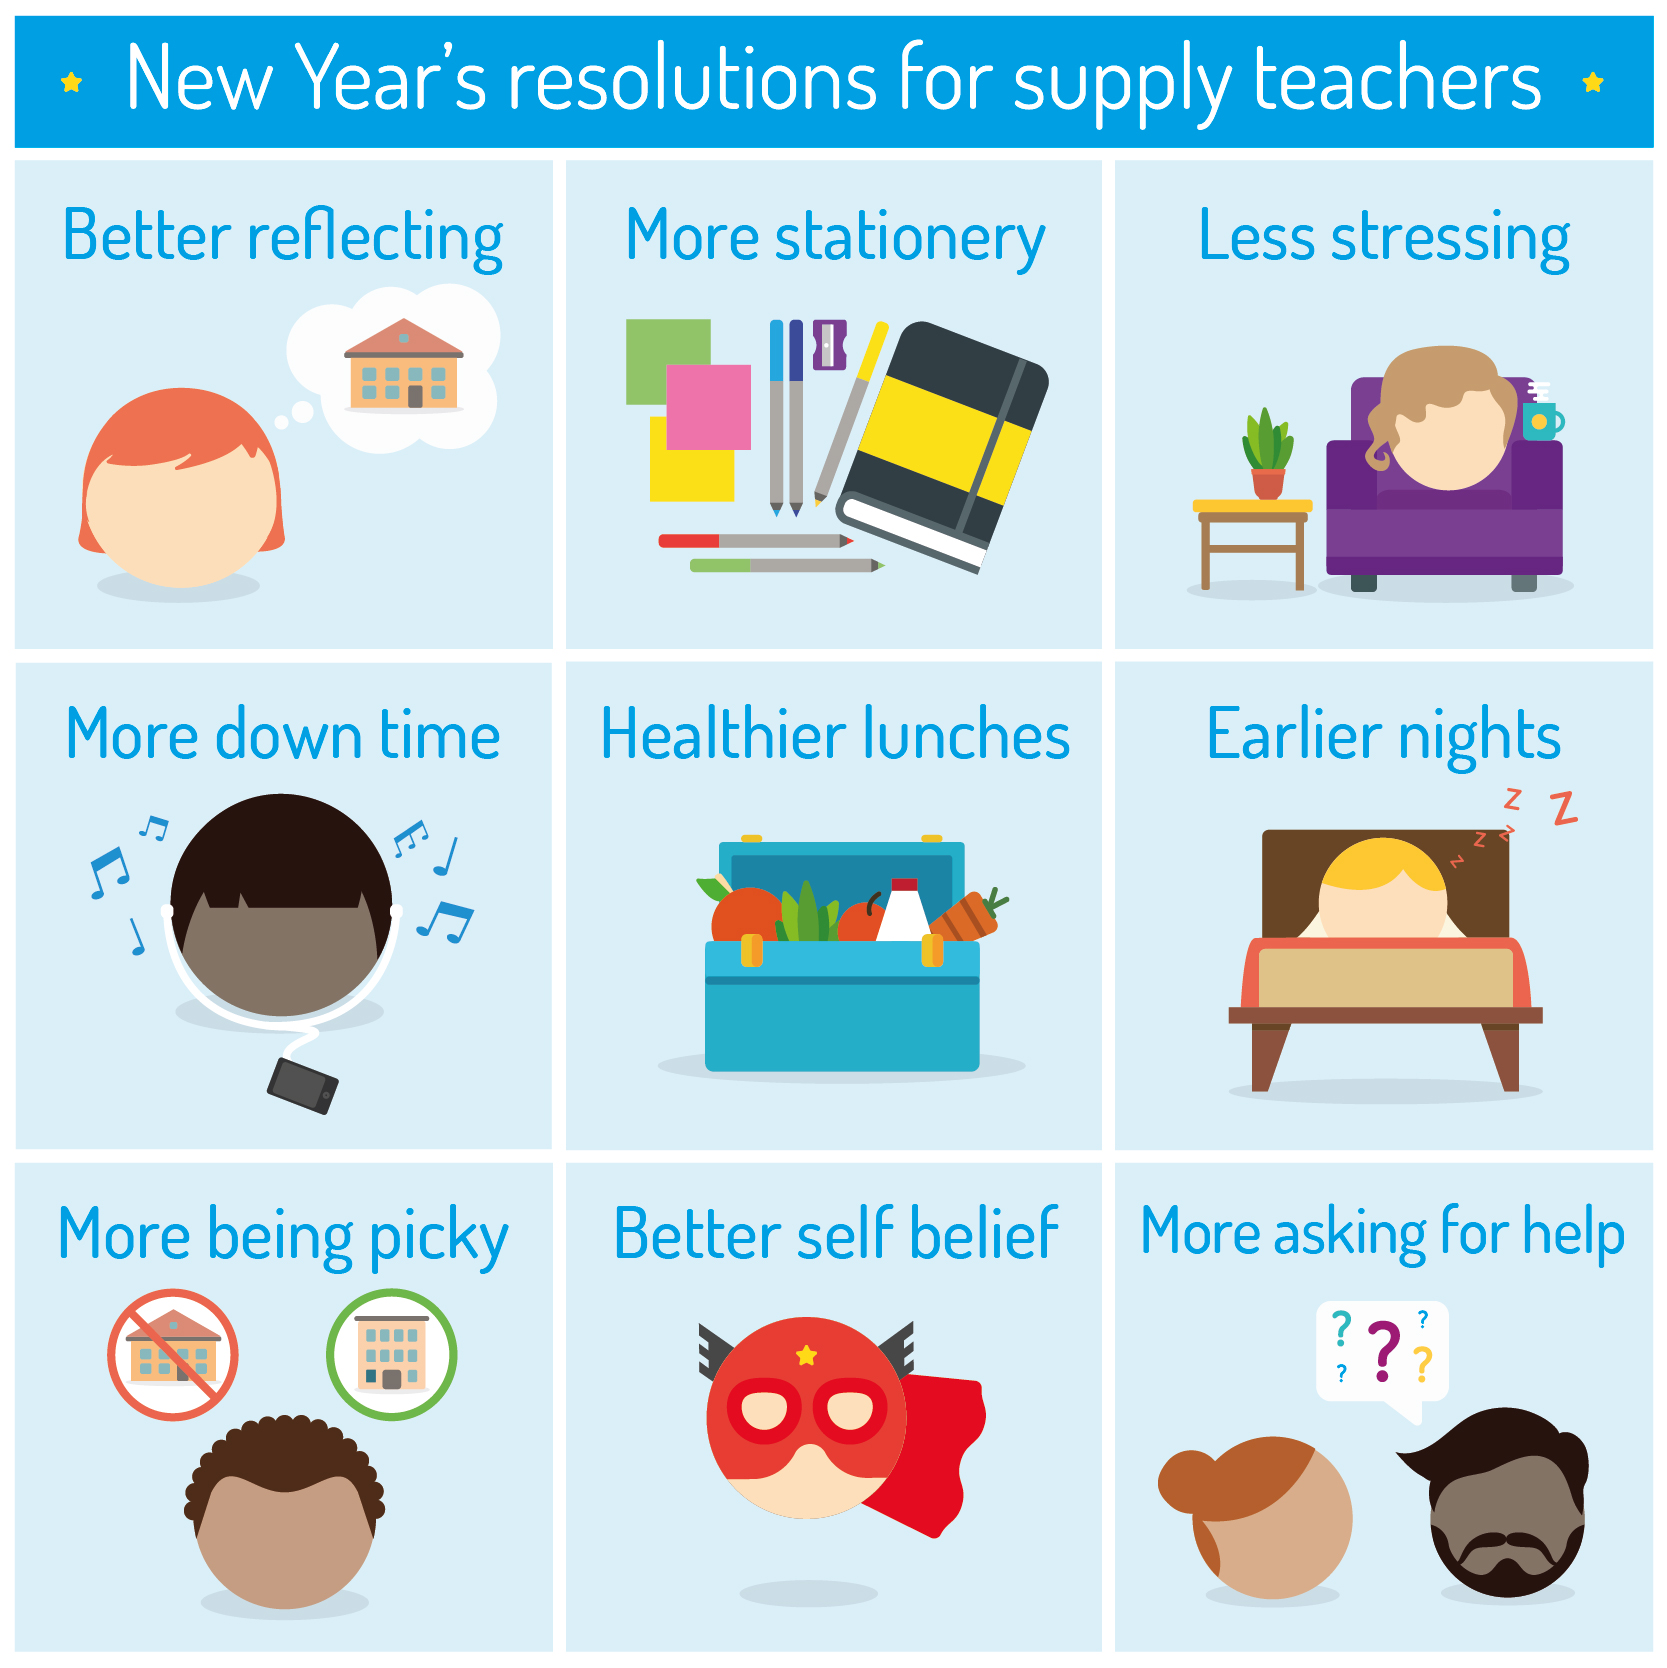 Key Portfolio - new Year's Resolutions for supply teachers - Better reflecting, More stationery, Less stressing, More down time, Healthier lunches, Earlier nights, More being picky, Better self belief, More asking for help